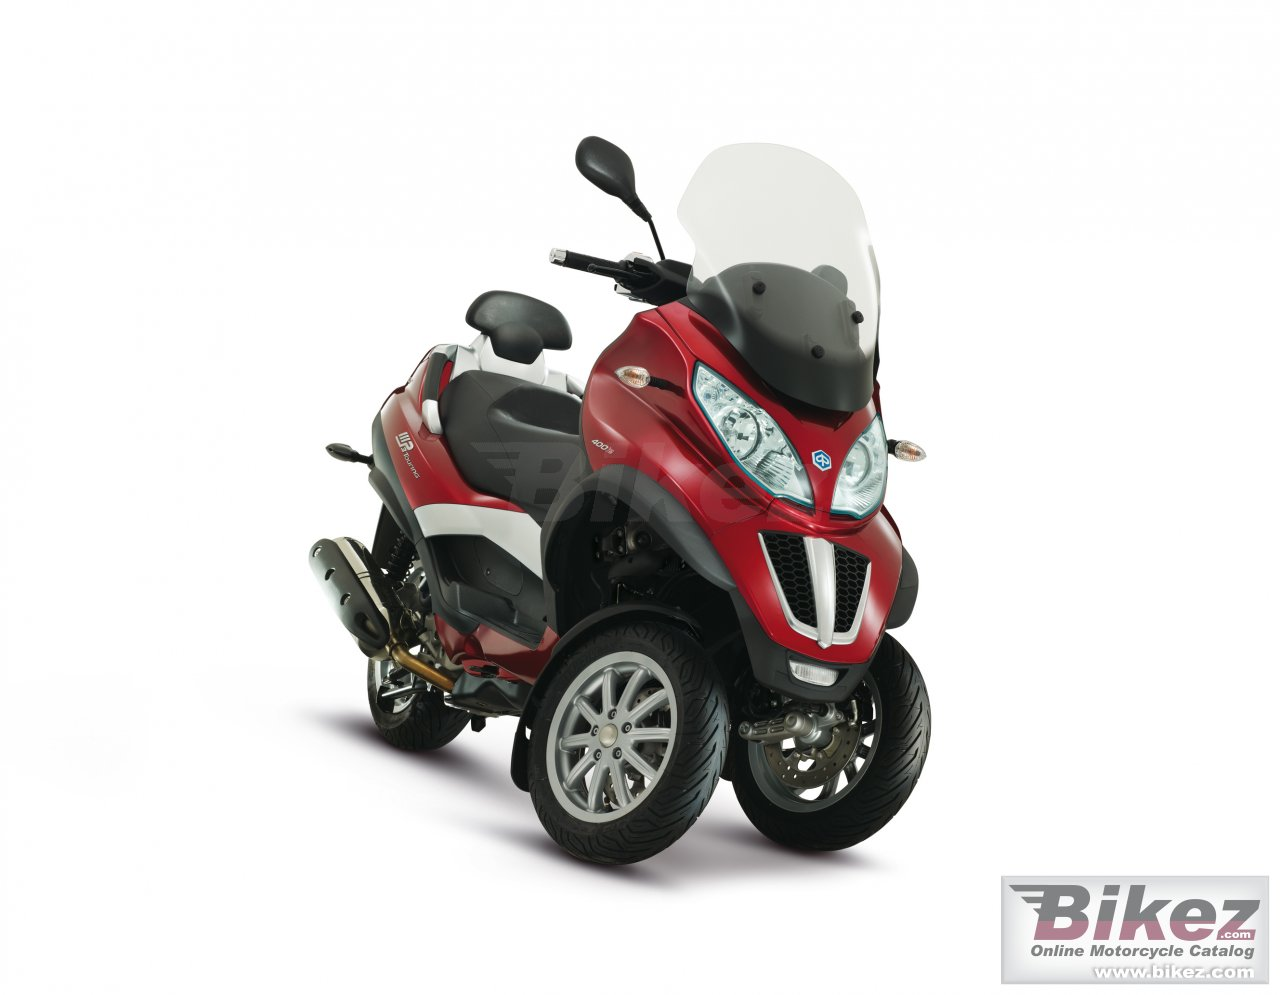 Big Piaggio mp3 touring lt 400 picture and wallpaper from Bikez.com